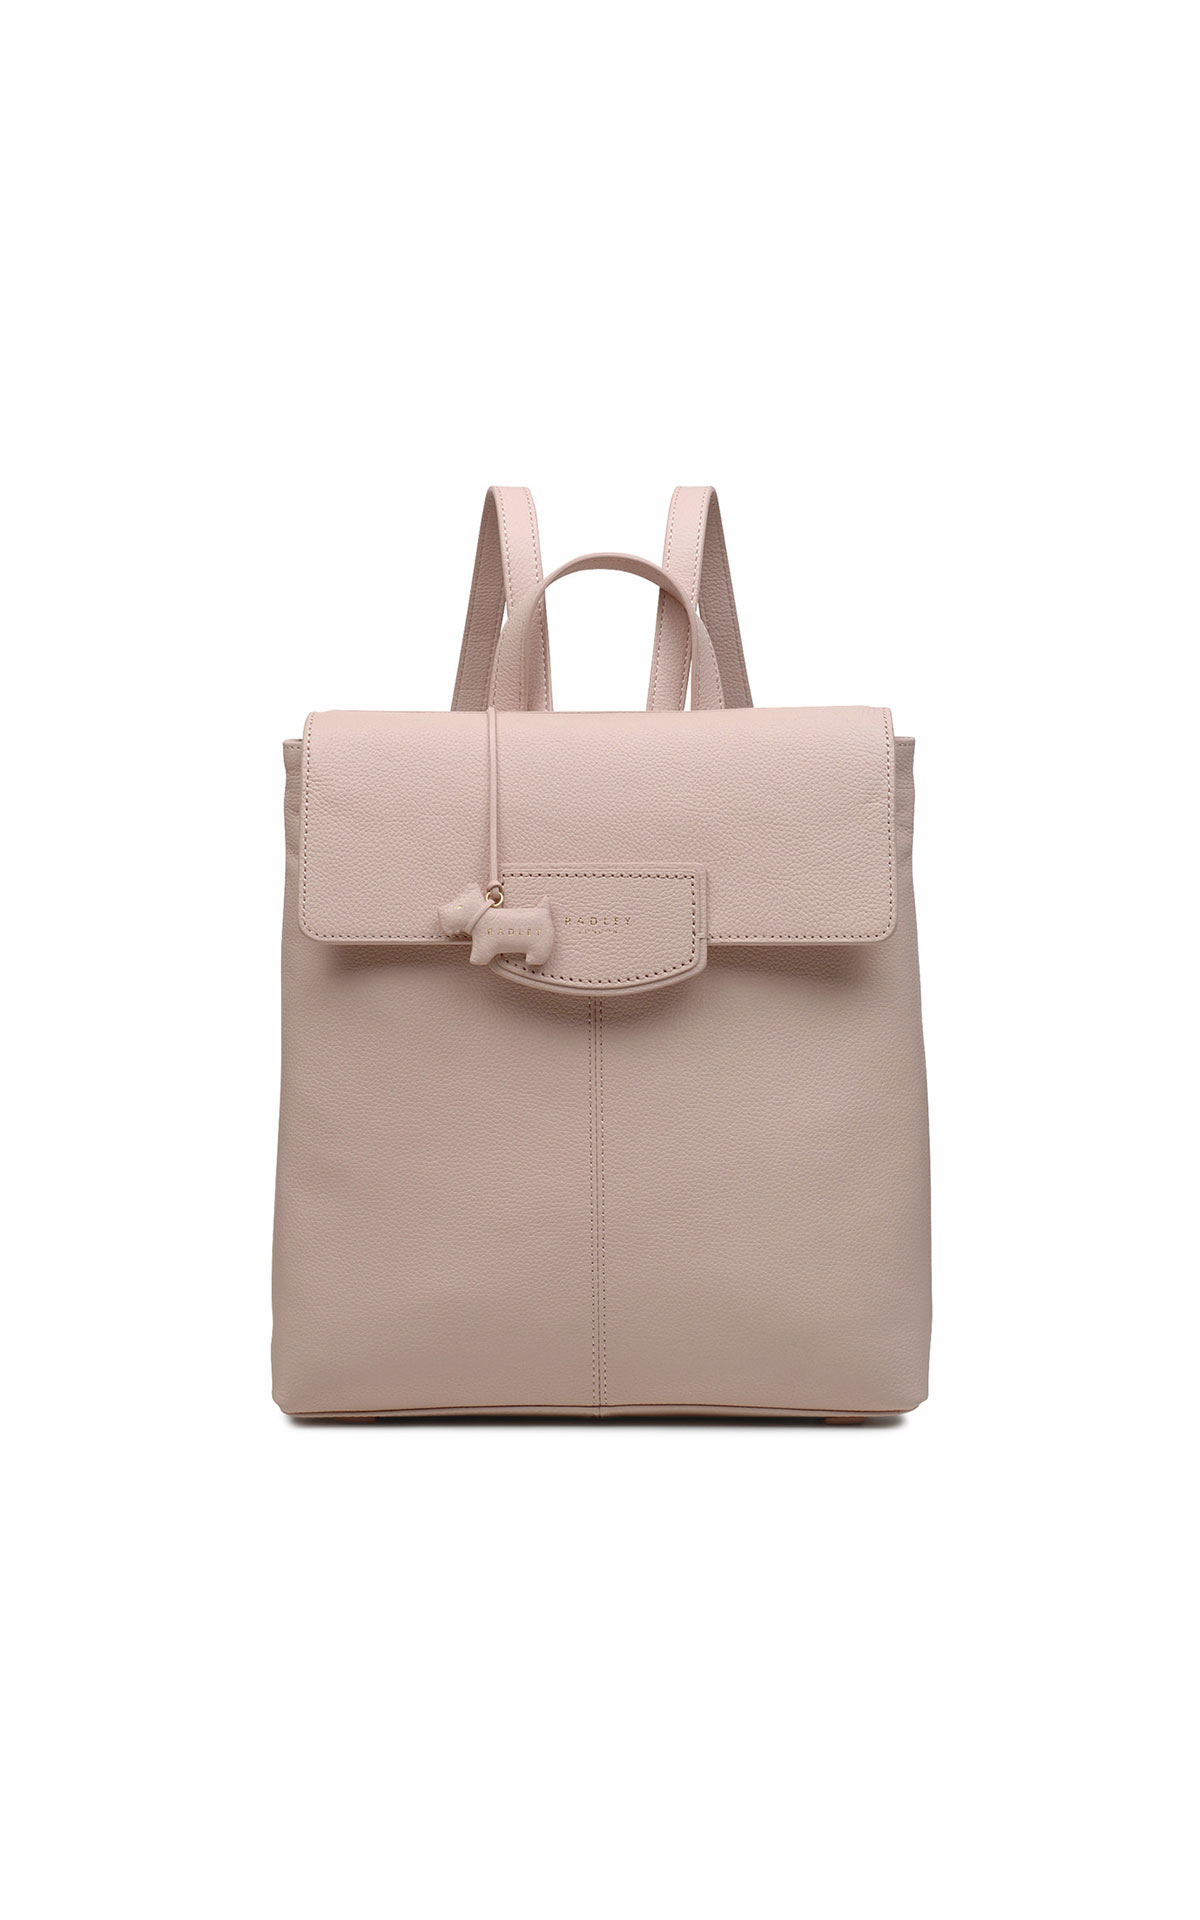 Radley Medium flapover backpack pink from Bicester Village